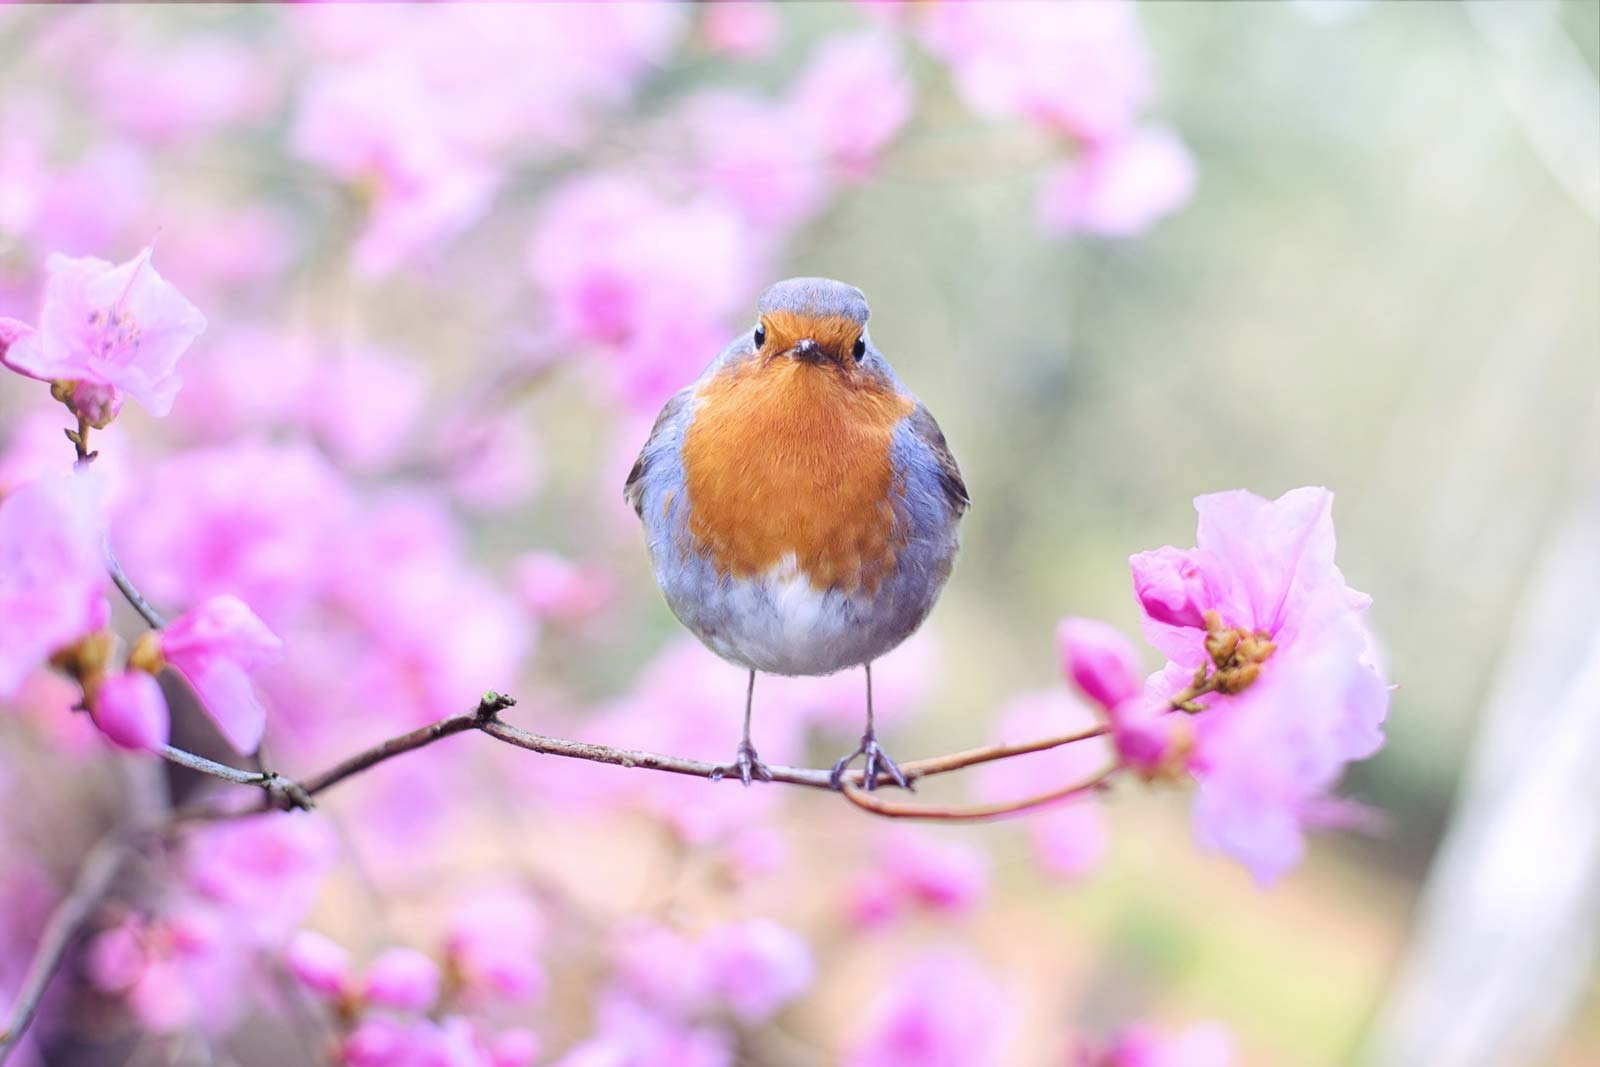 Image of a fat orange bird on a branch in front of pink blossoms